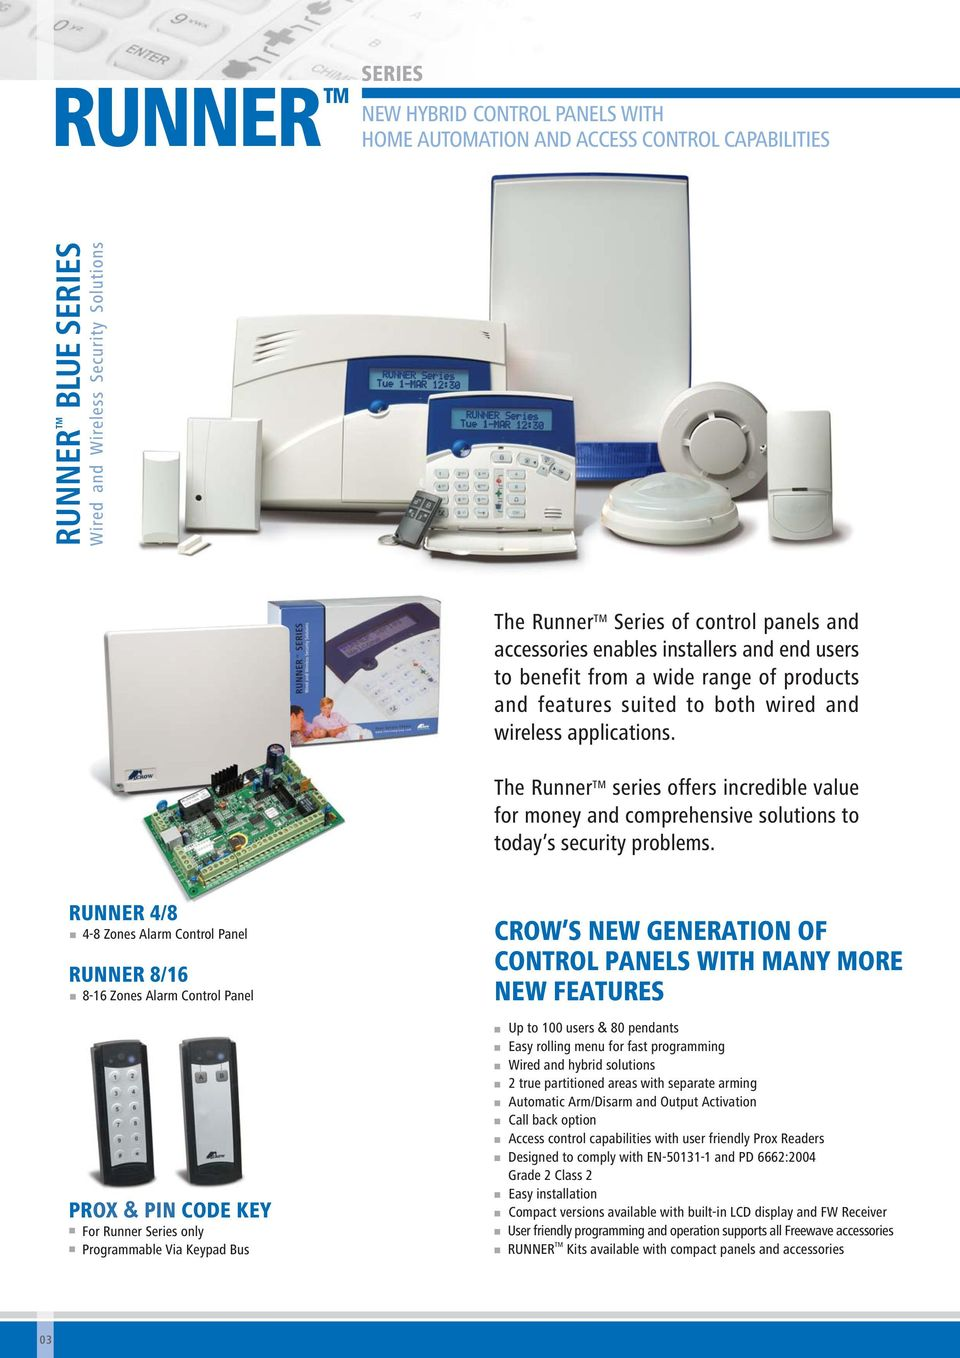 wide rage of products ad features suited to both wired ad wireless applicatios. The Ruer TM series offers icredible value for moey ad comprehesive solutios to today s security problems.